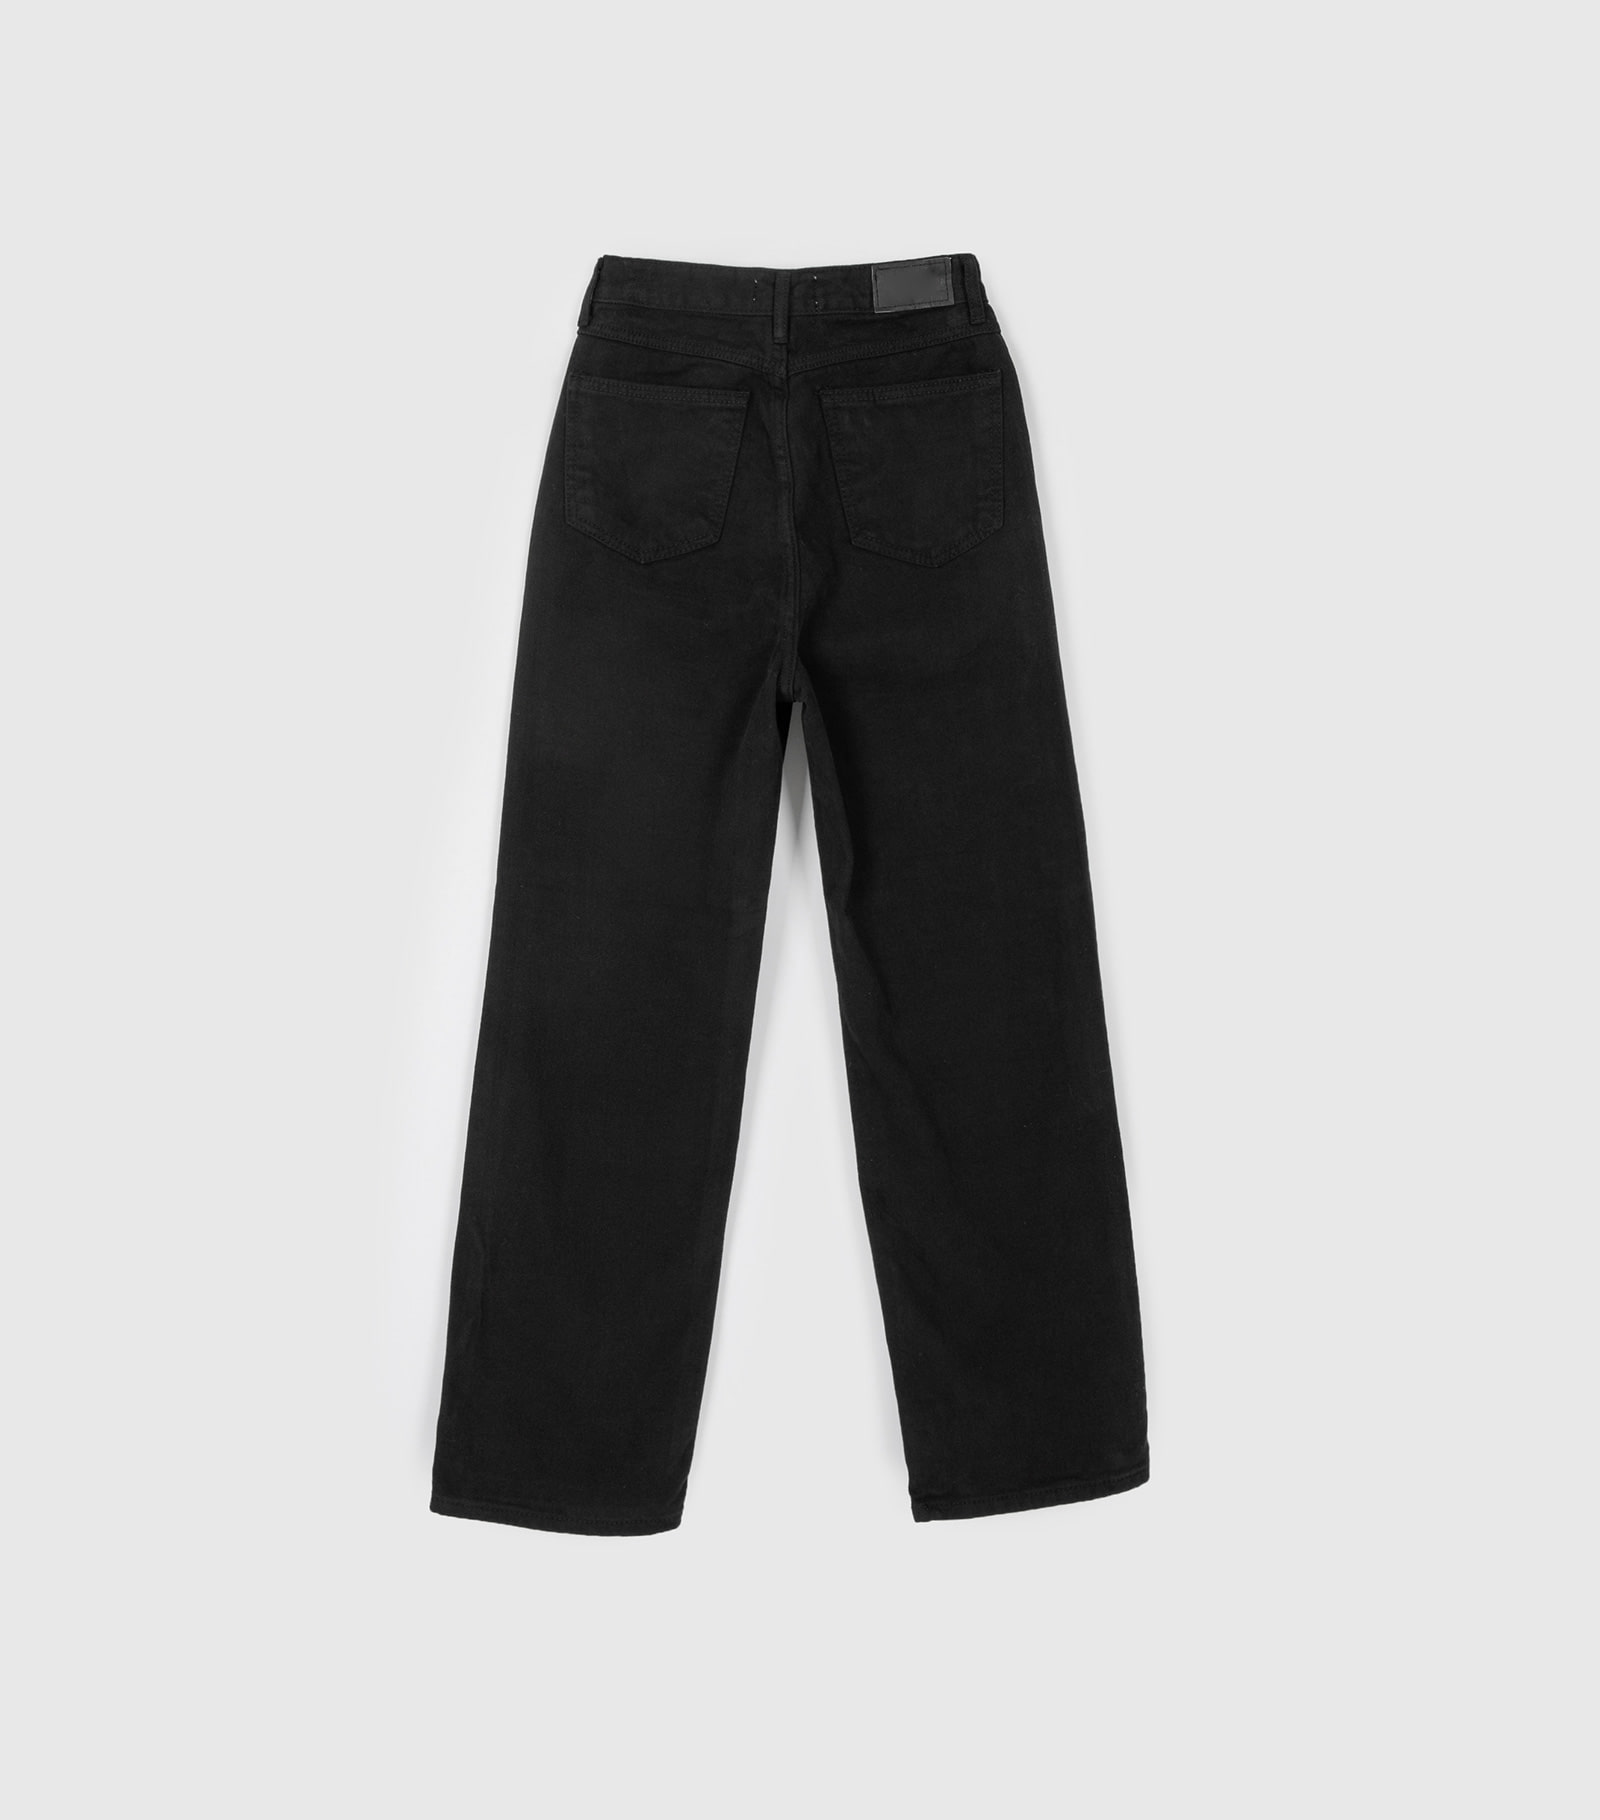 Daily brushed cotton pants